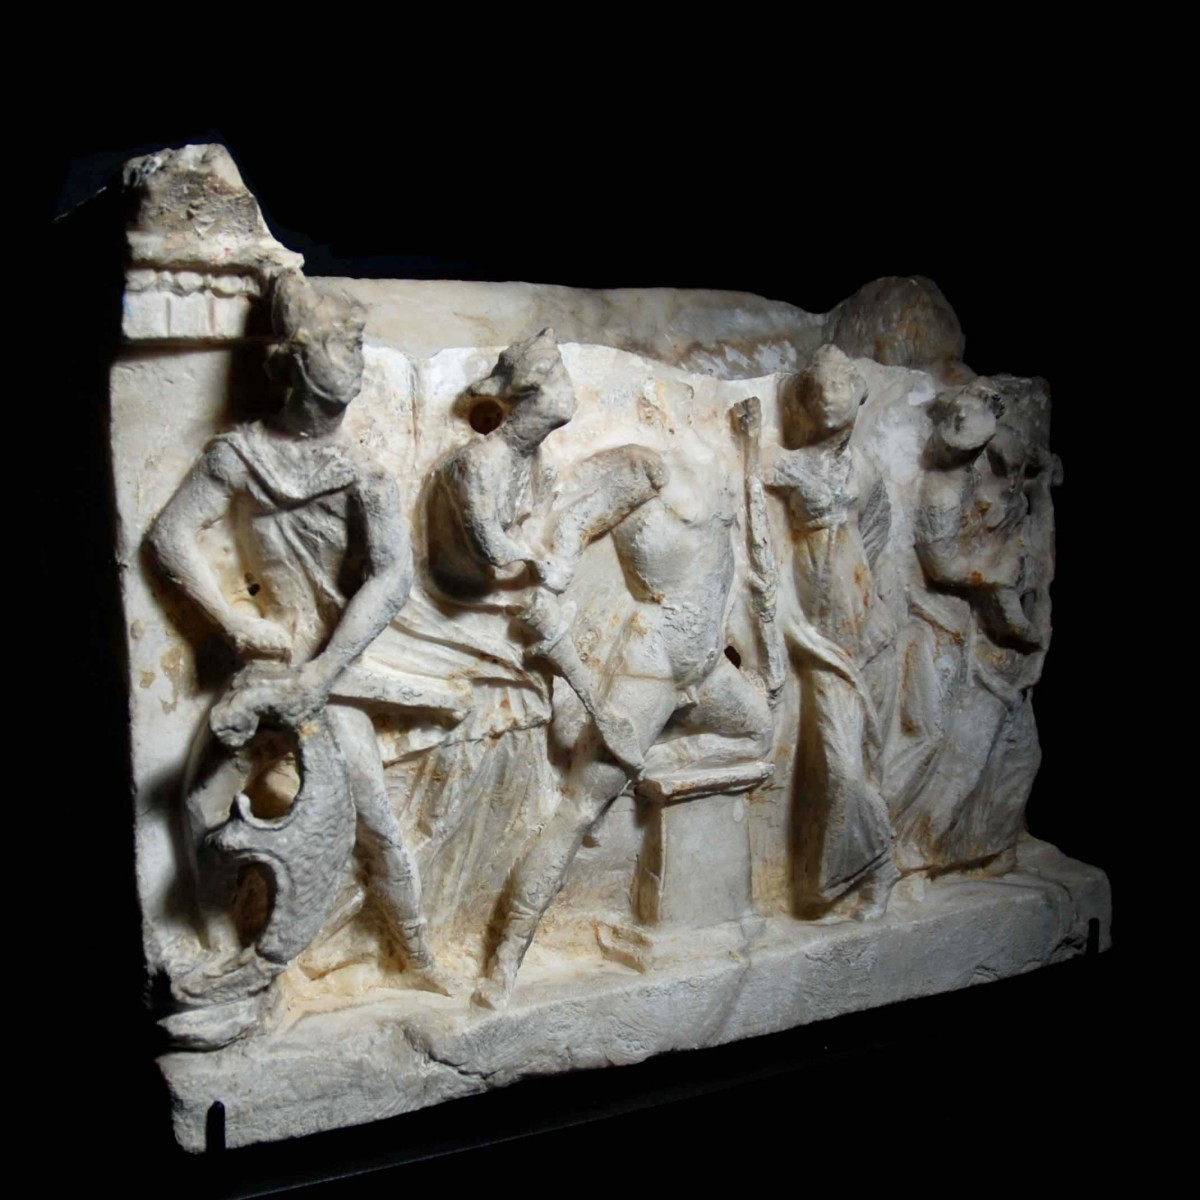 Etruscan alabaster cinerary urn showing the recognition of Paris left